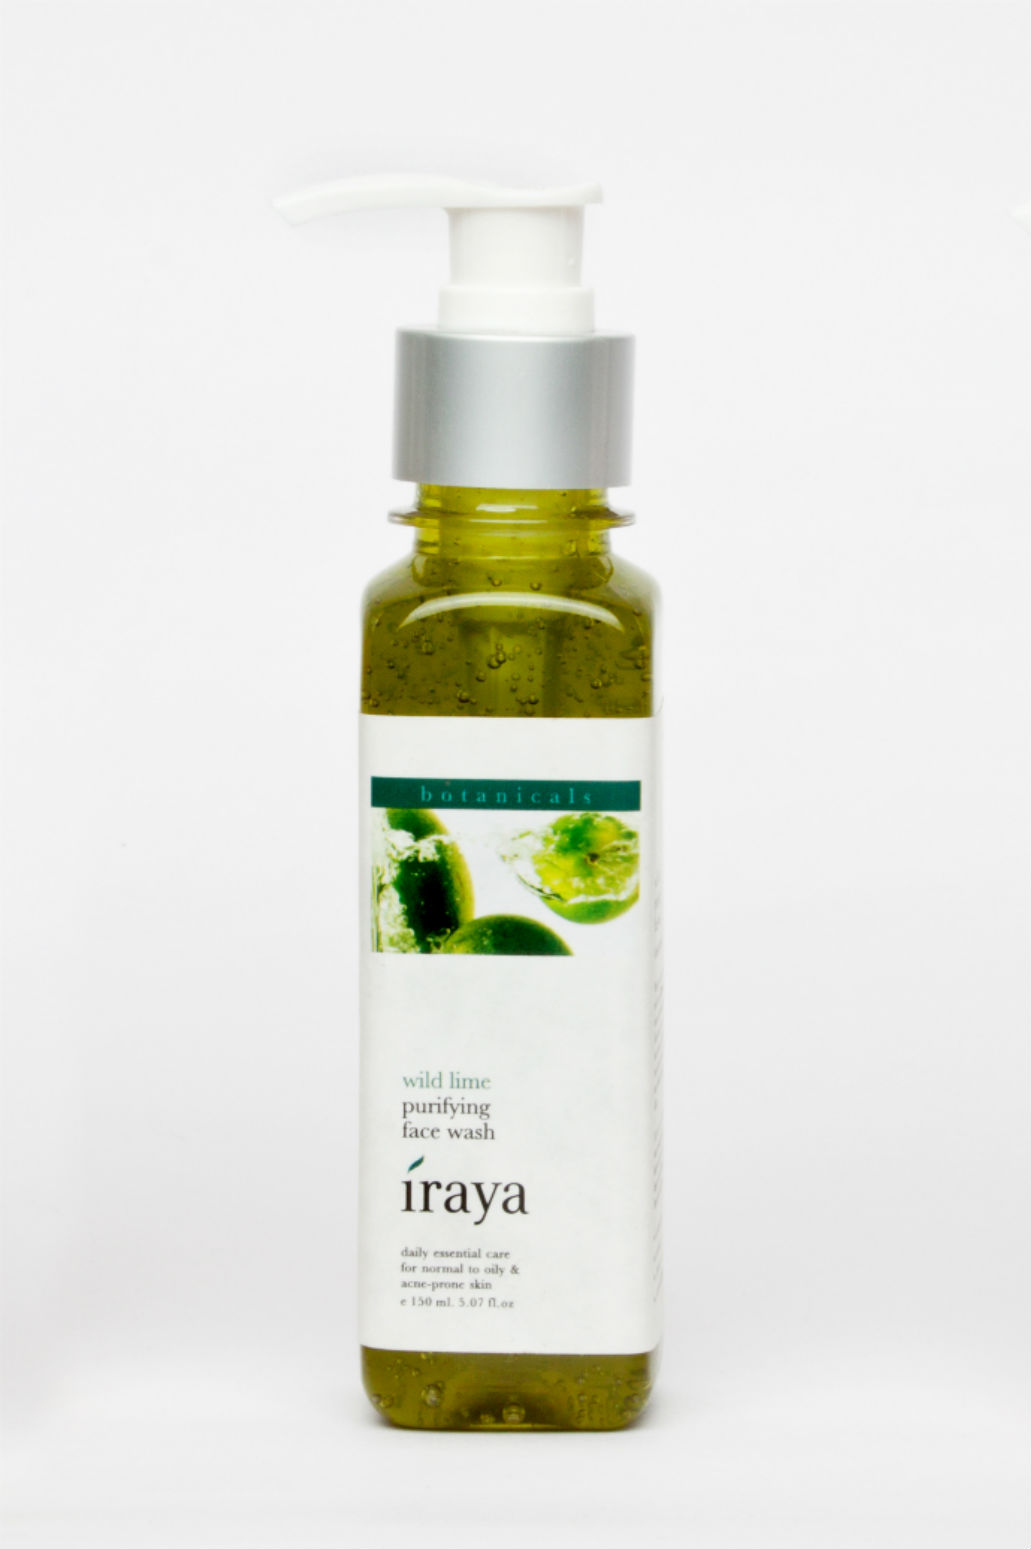 Iraya Wild Lime Purifying Face Wash